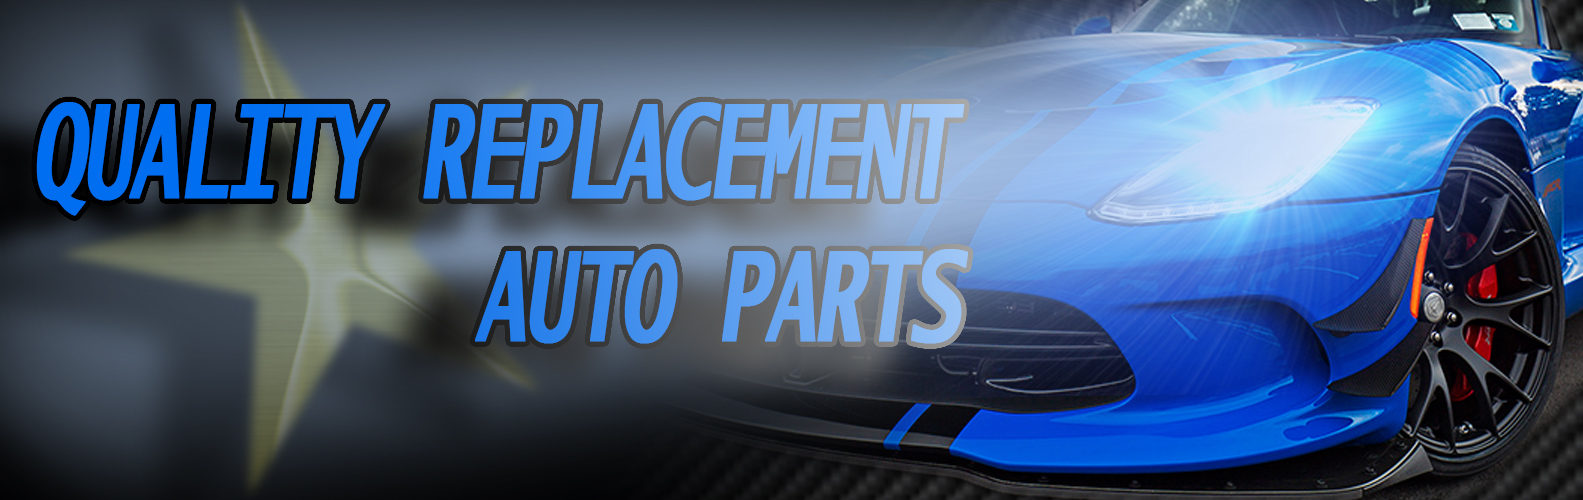 ENA Auto Parts – Ask Our Experts: 1(626) 965-0590